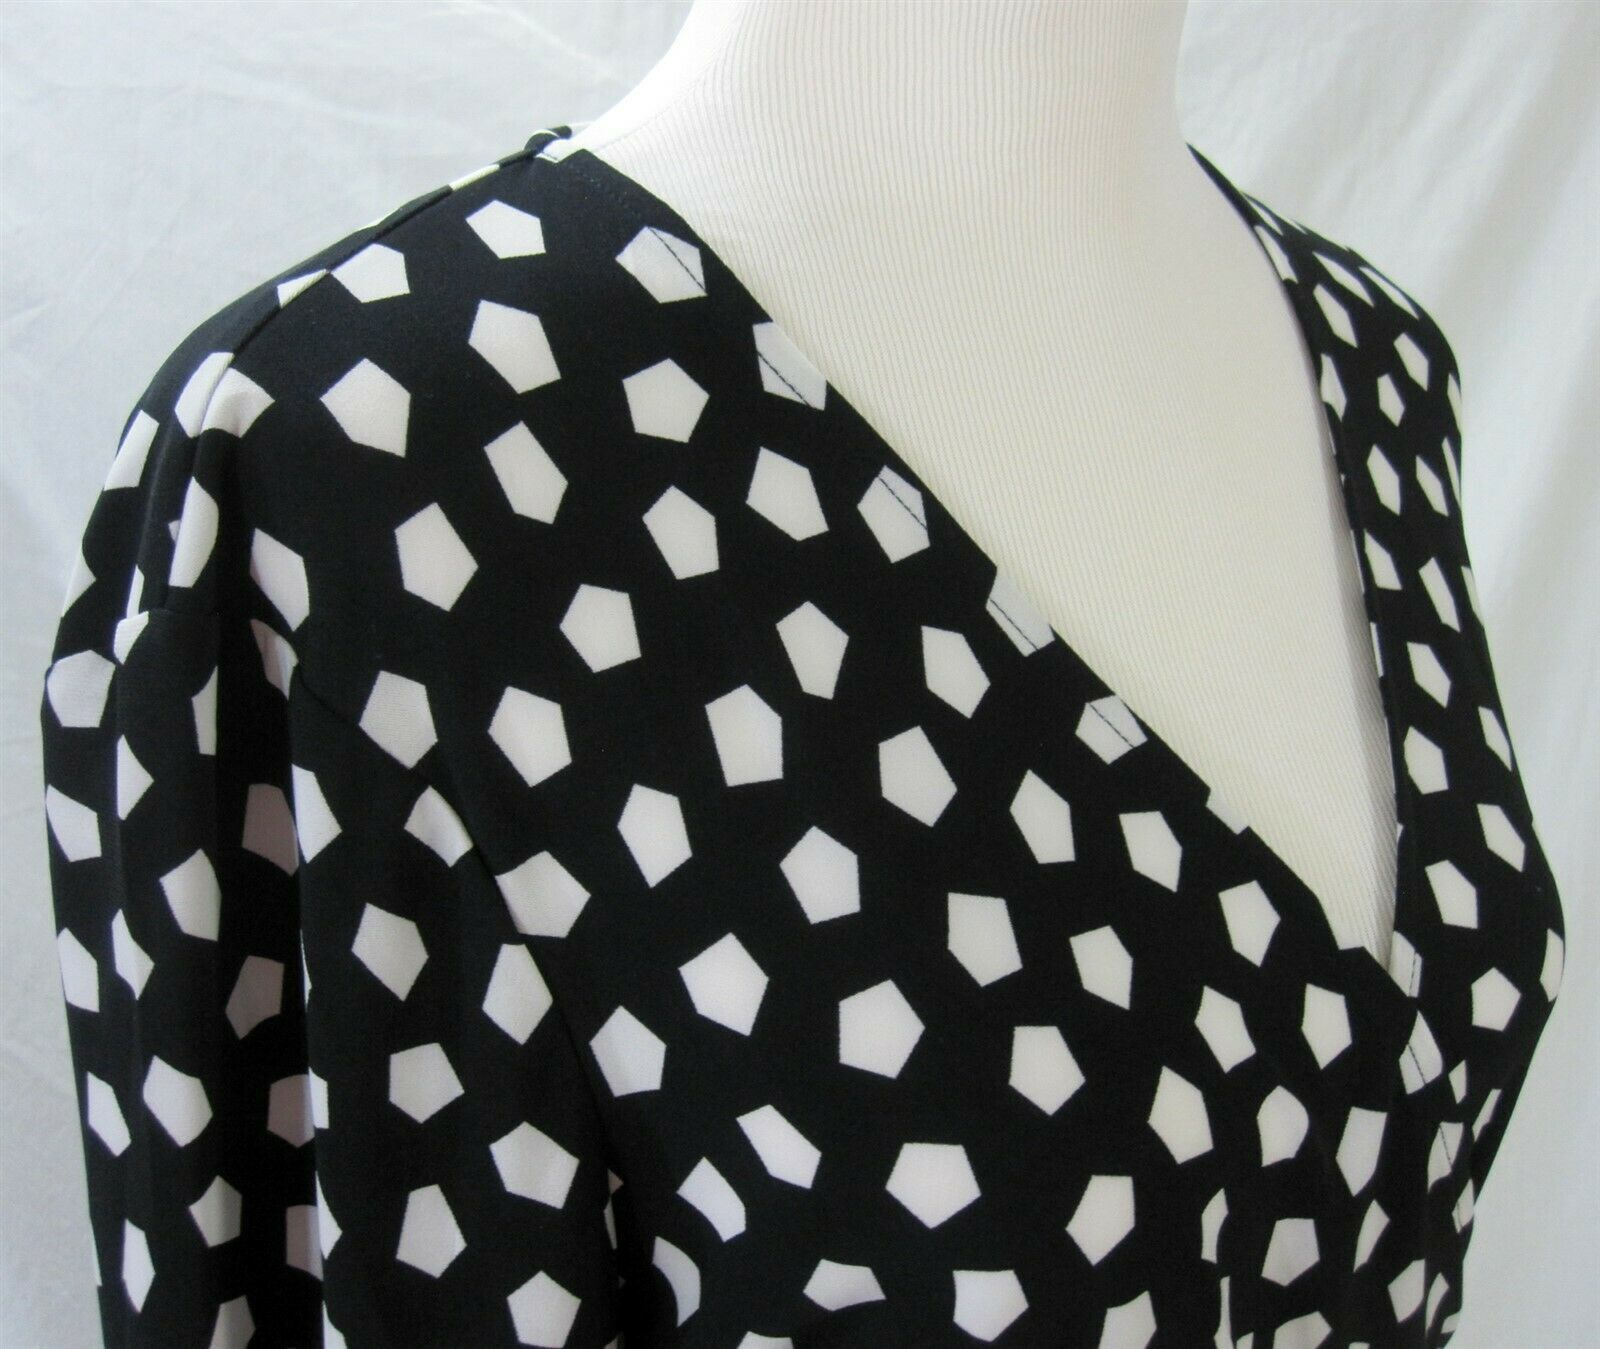 Anne Klein Dress Size XL Wrap Dress Black White Silky Jersey Knit